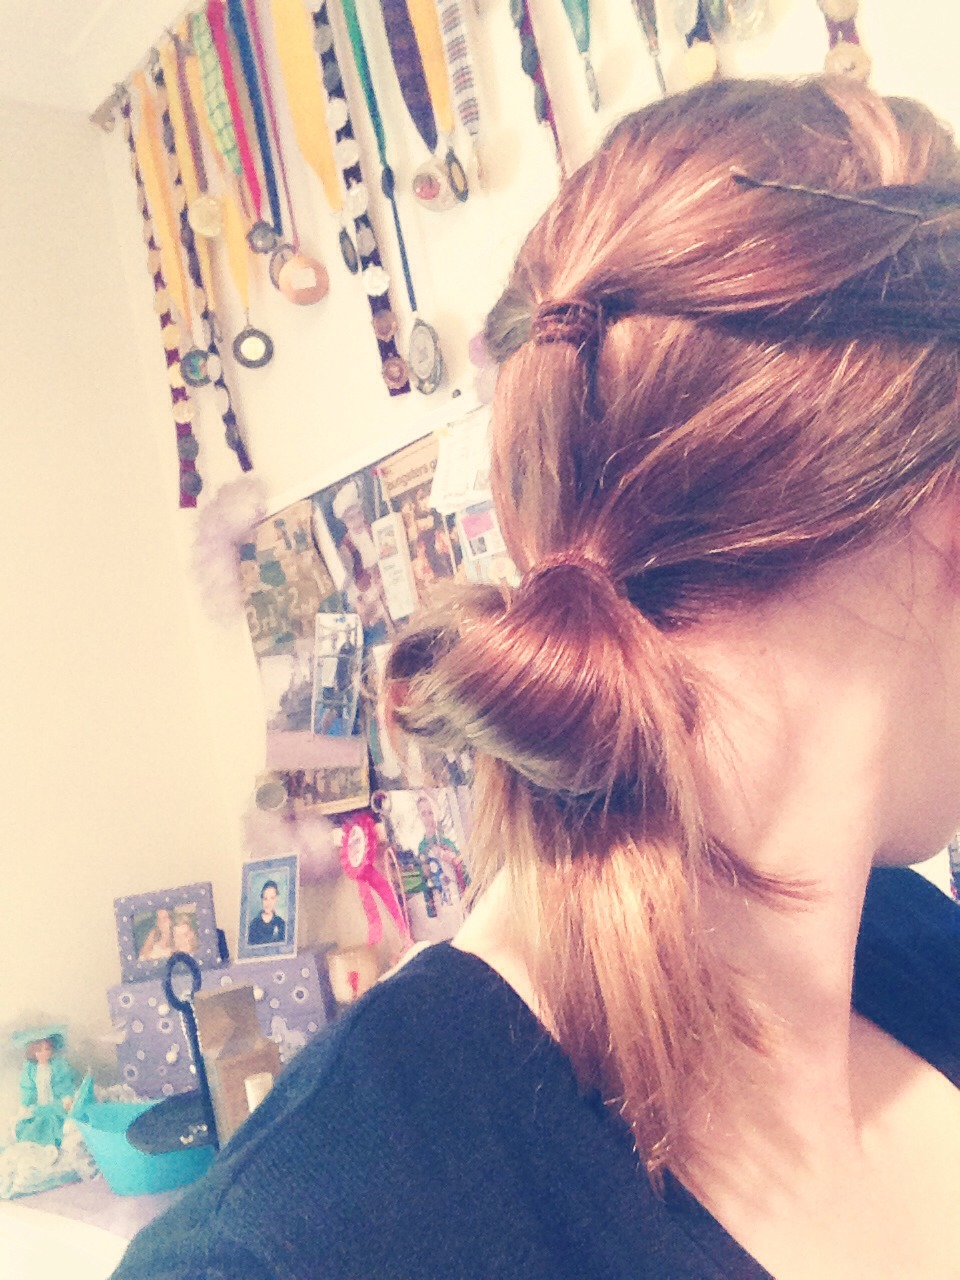 Loop hair twice for long hair and once for short hair with hair tie